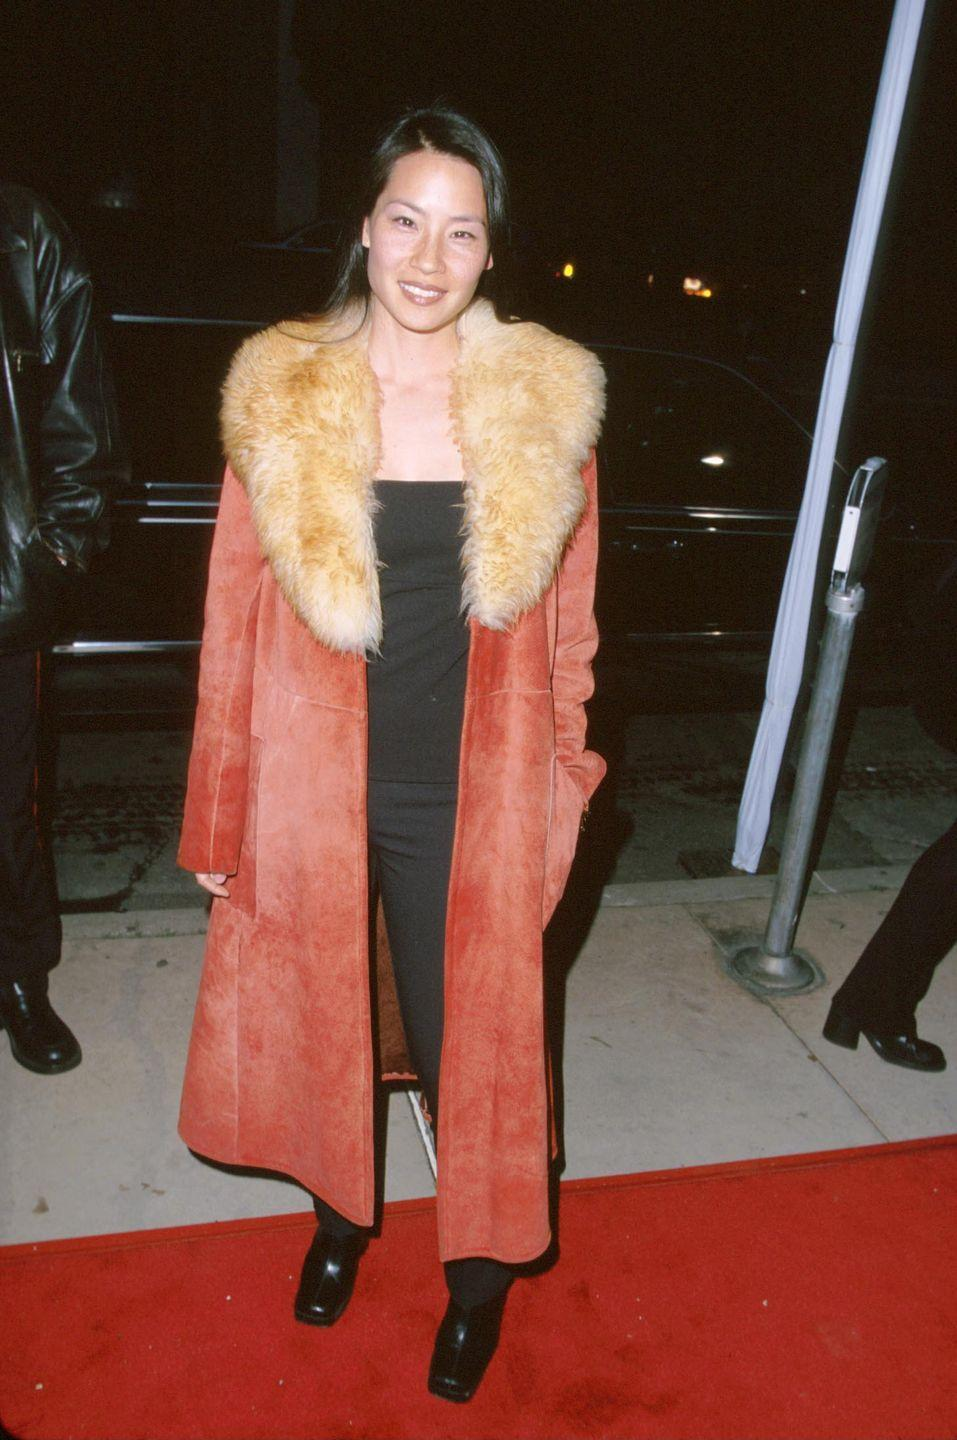 <p>The <em>Charlie's Angels</em> actress bundled up on the red carpet in a red suede coat over a simple black tee and pants. </p>